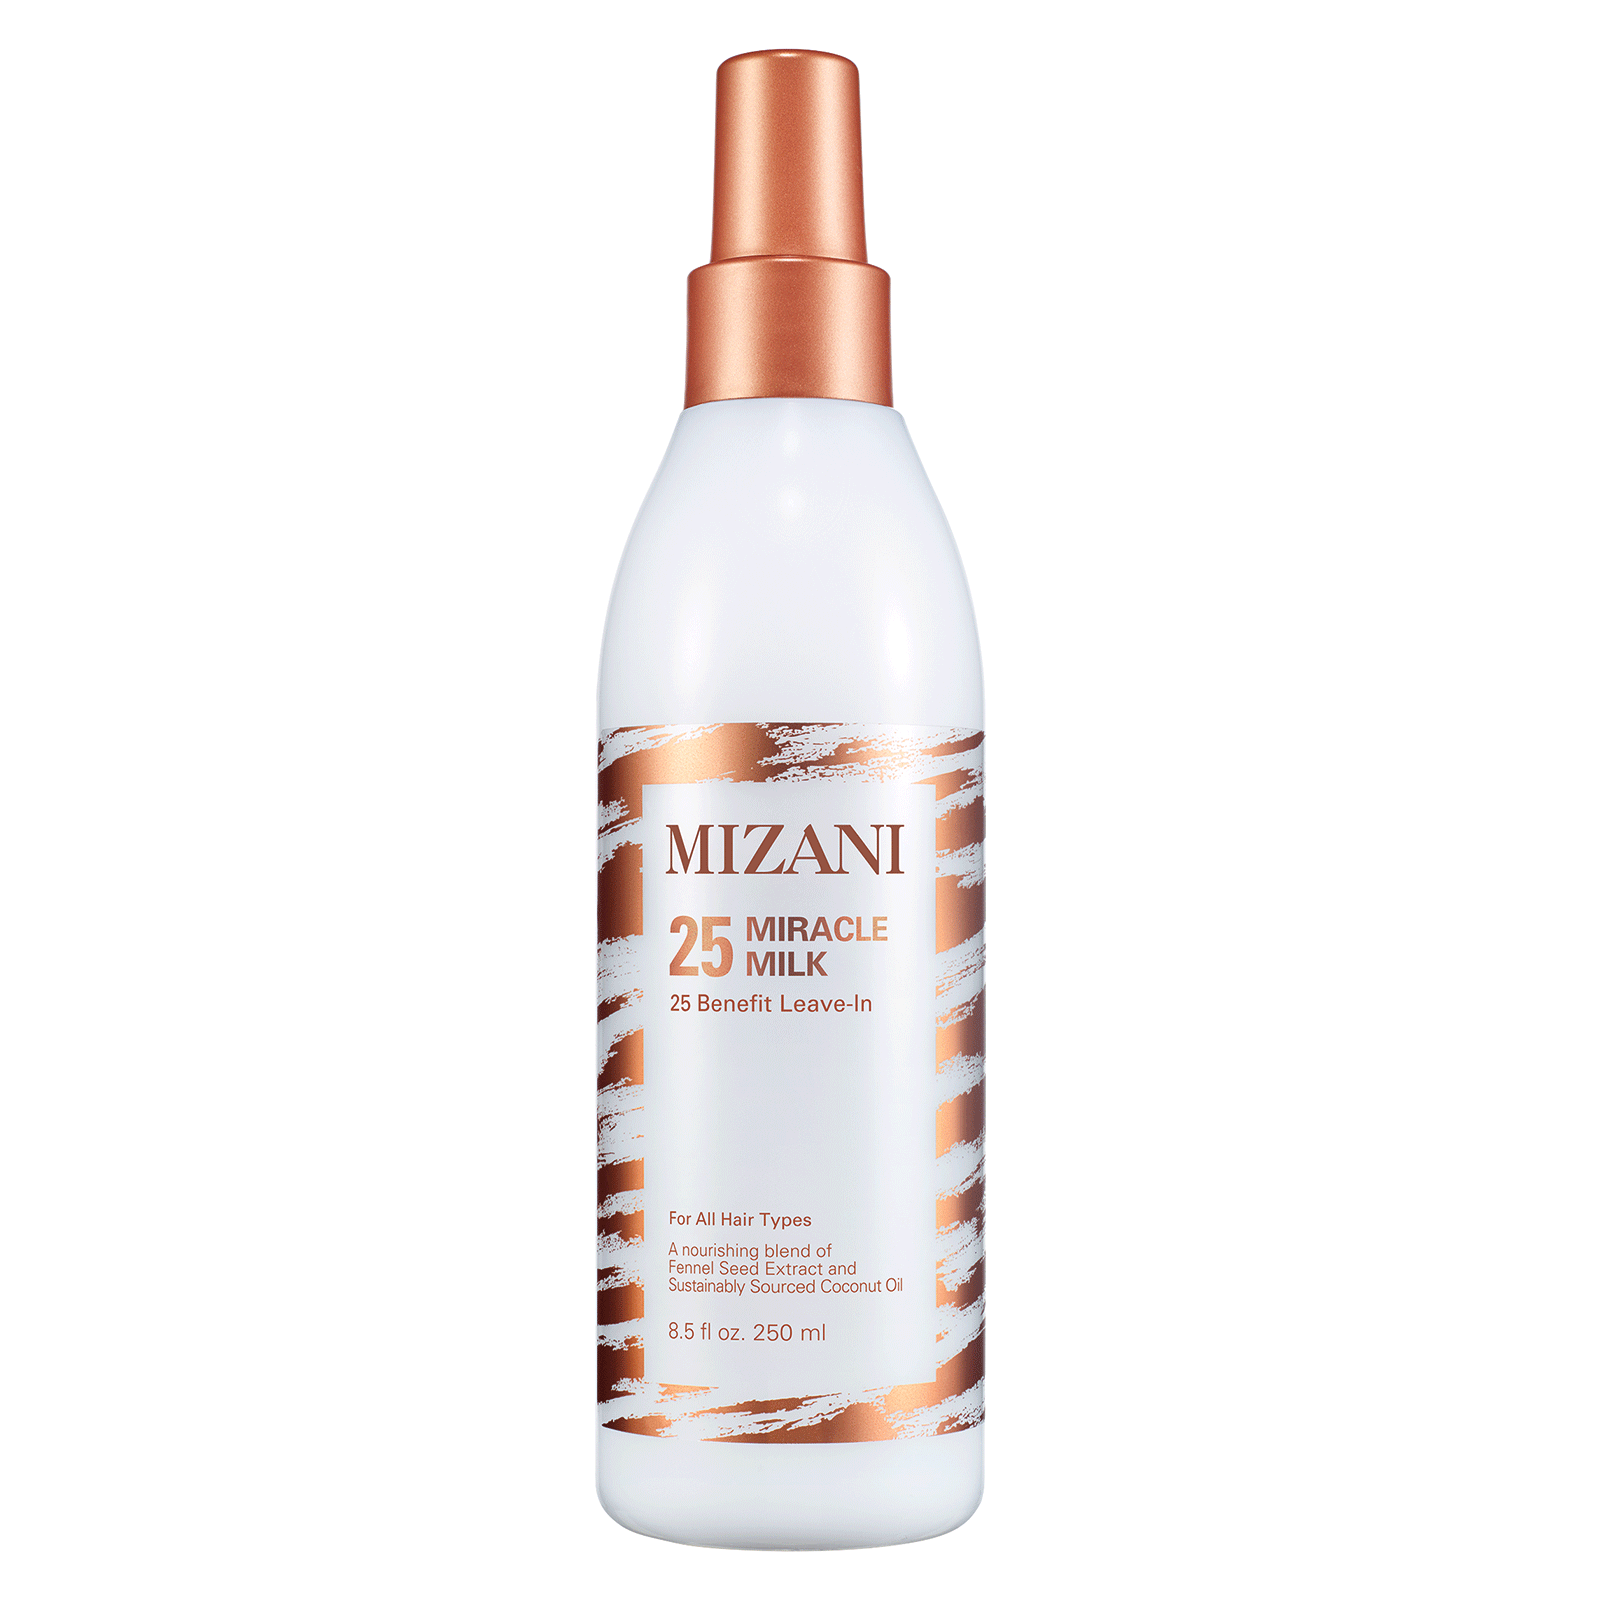 25 Miracle Milk Multi-Benefit Leave-In Spray